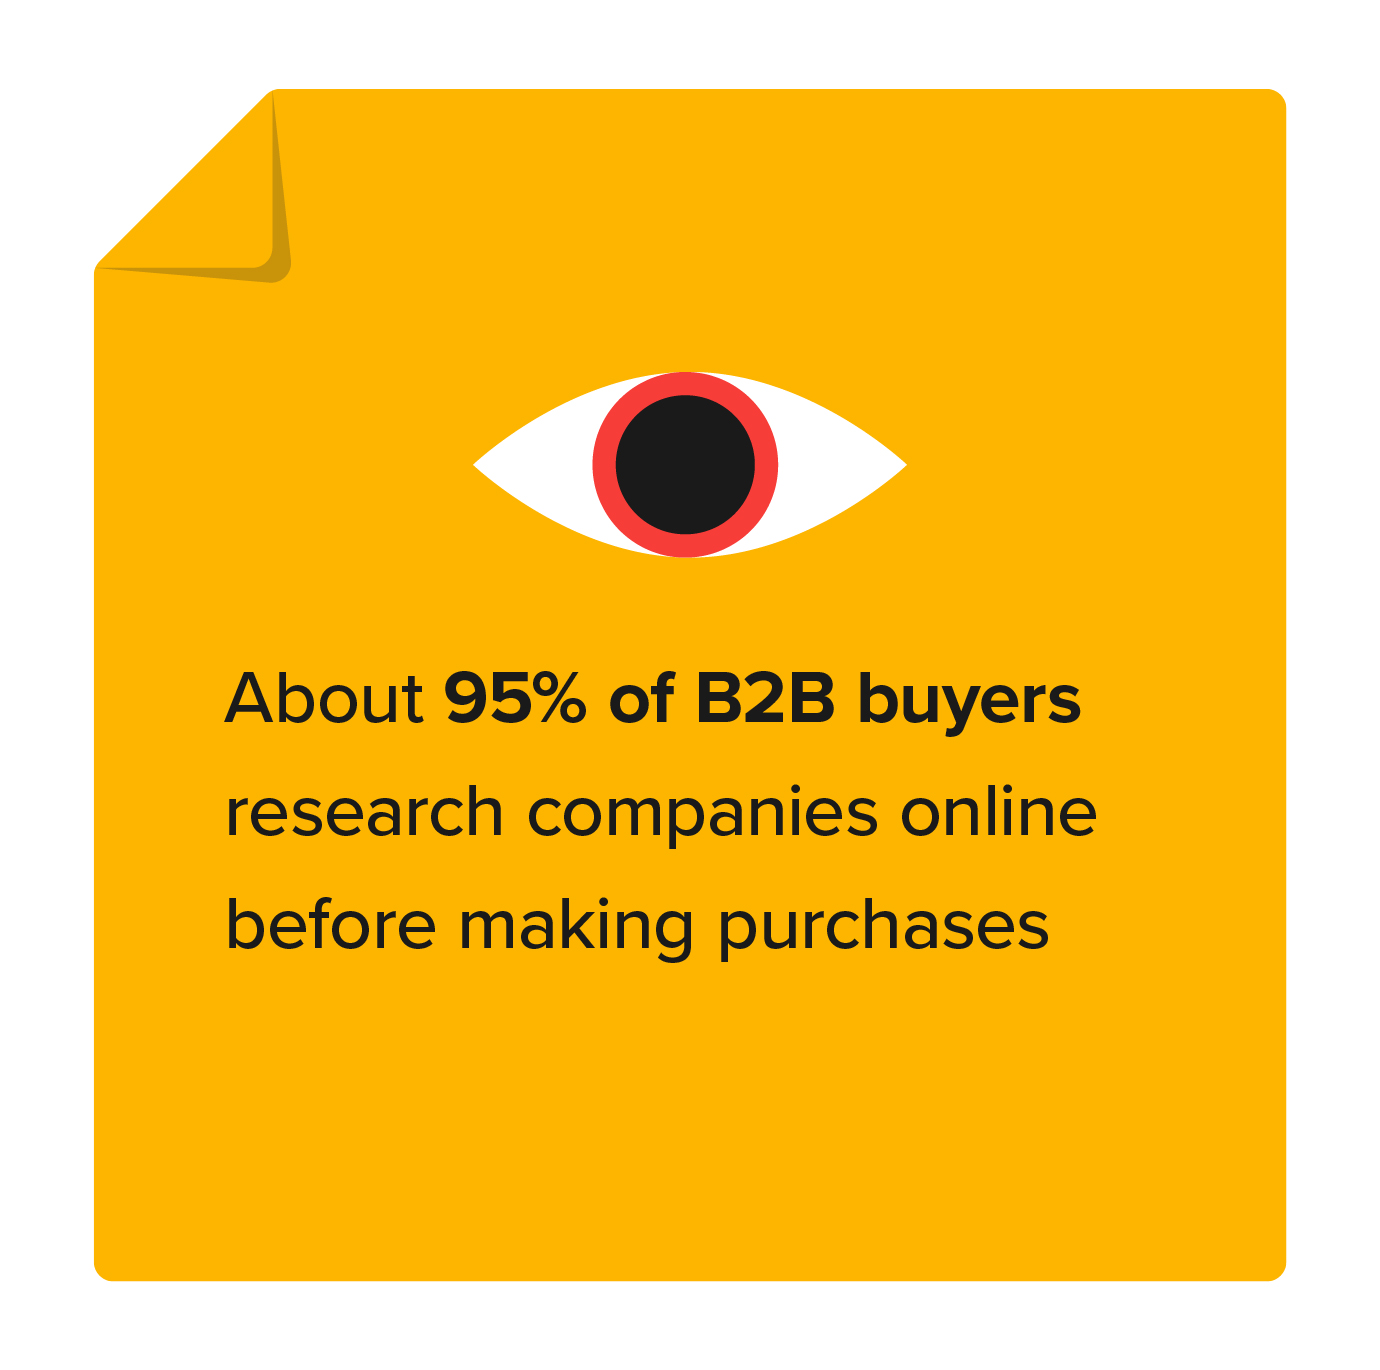 B2B buyers research products online